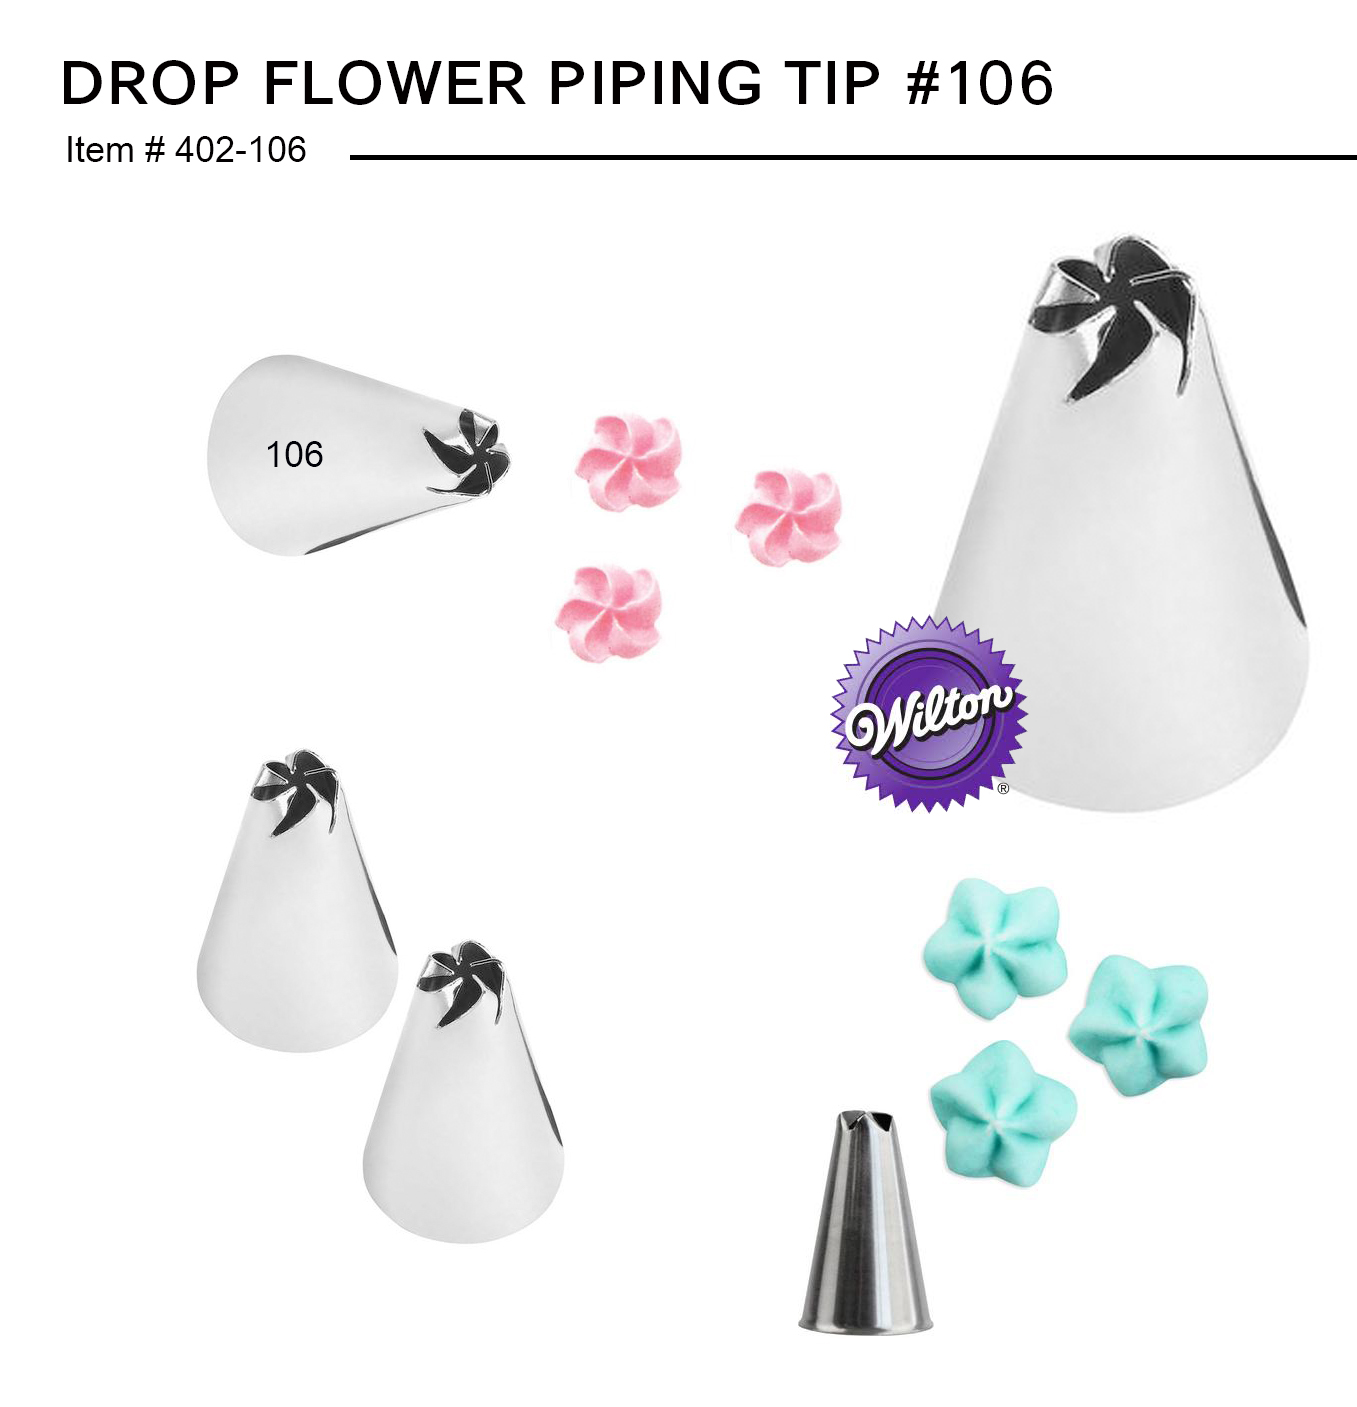 #106 DROP FLOWER PIPING TIP (402-106)